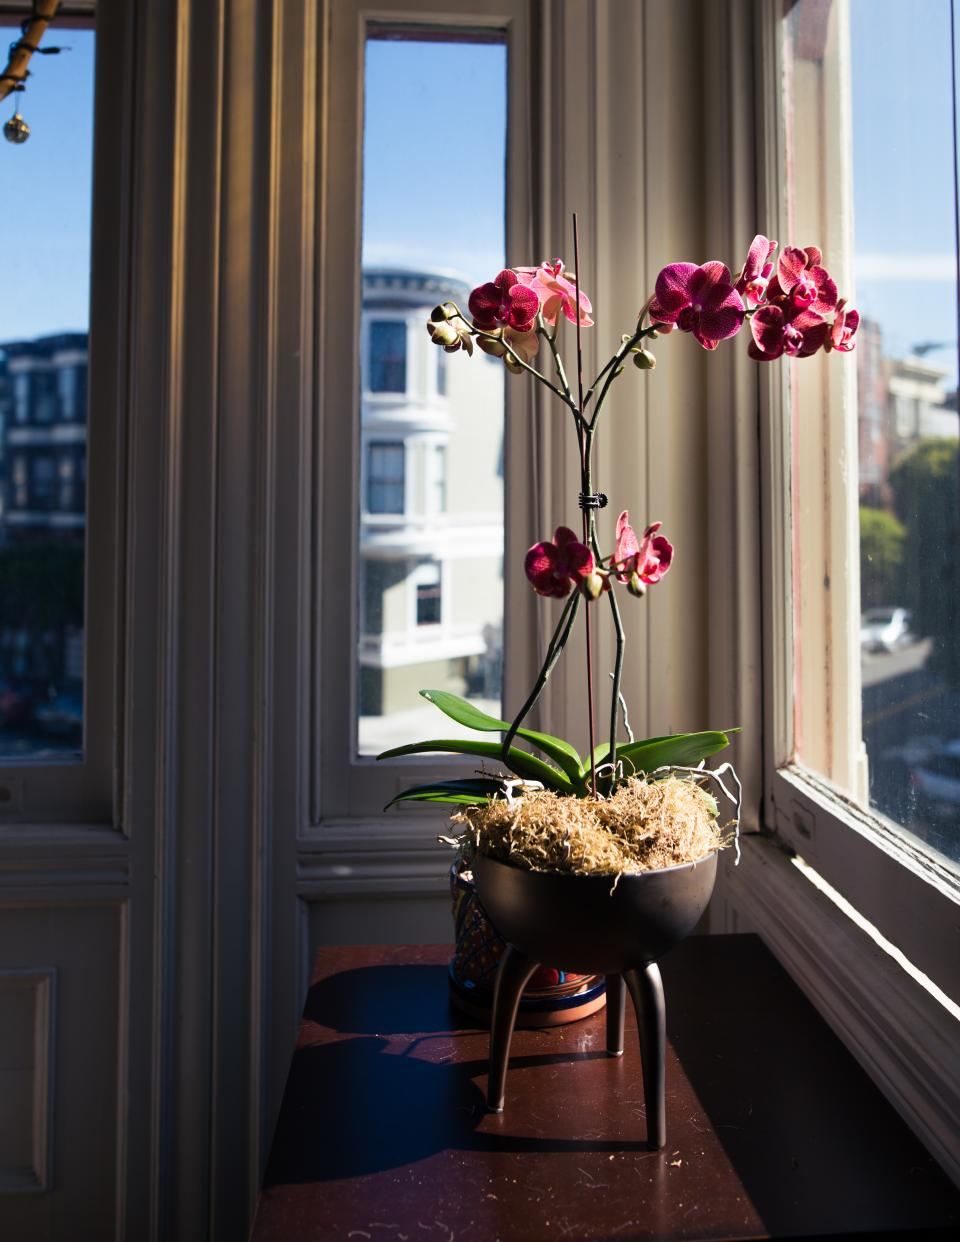 orchids flower plant stem nature interior building window glass sky